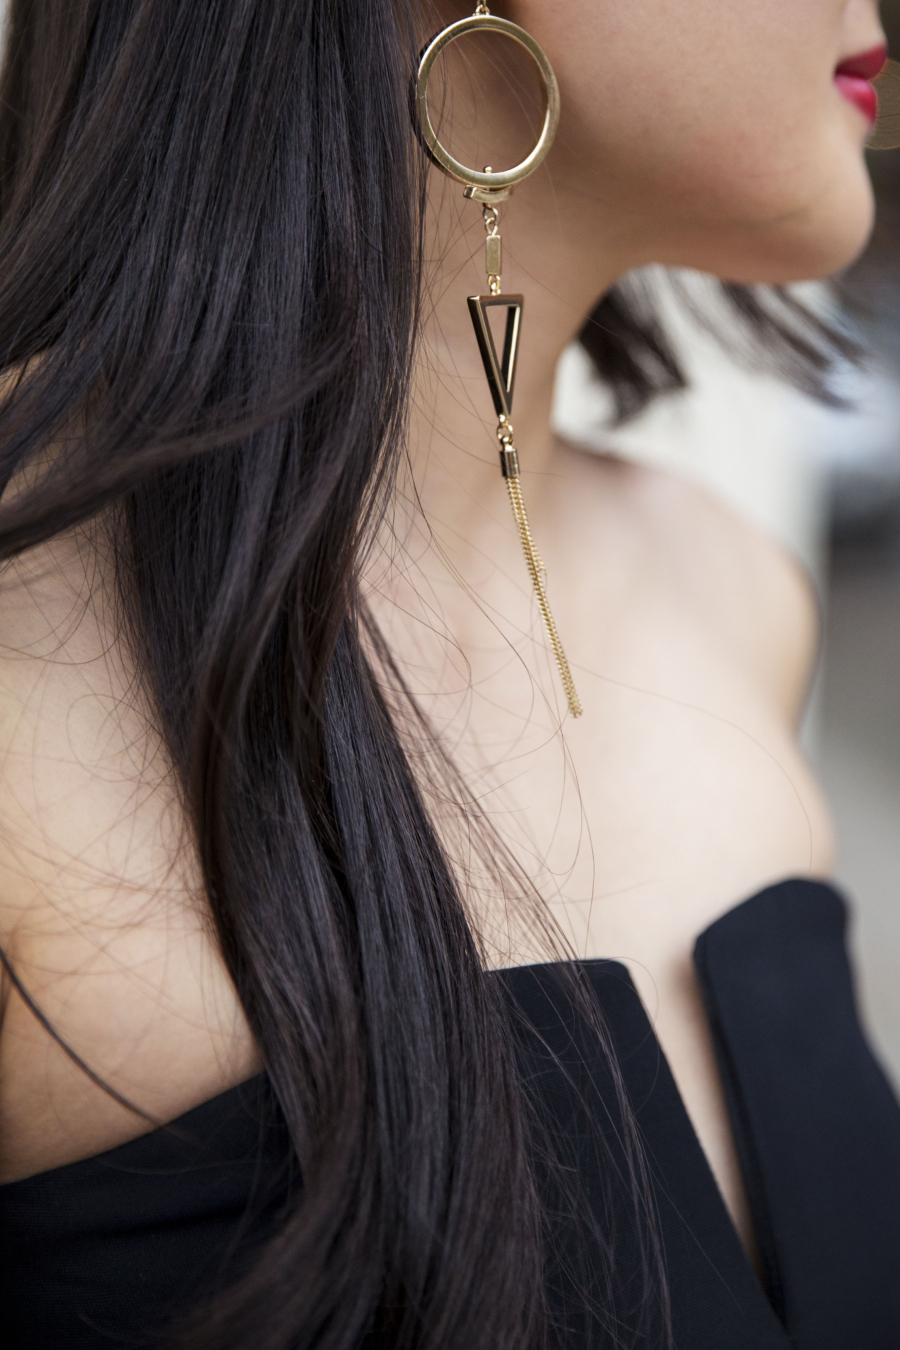 Geometric Earrings - 7 Fashionable Earrings You Never Knew You Needed // NotJessFashion.com